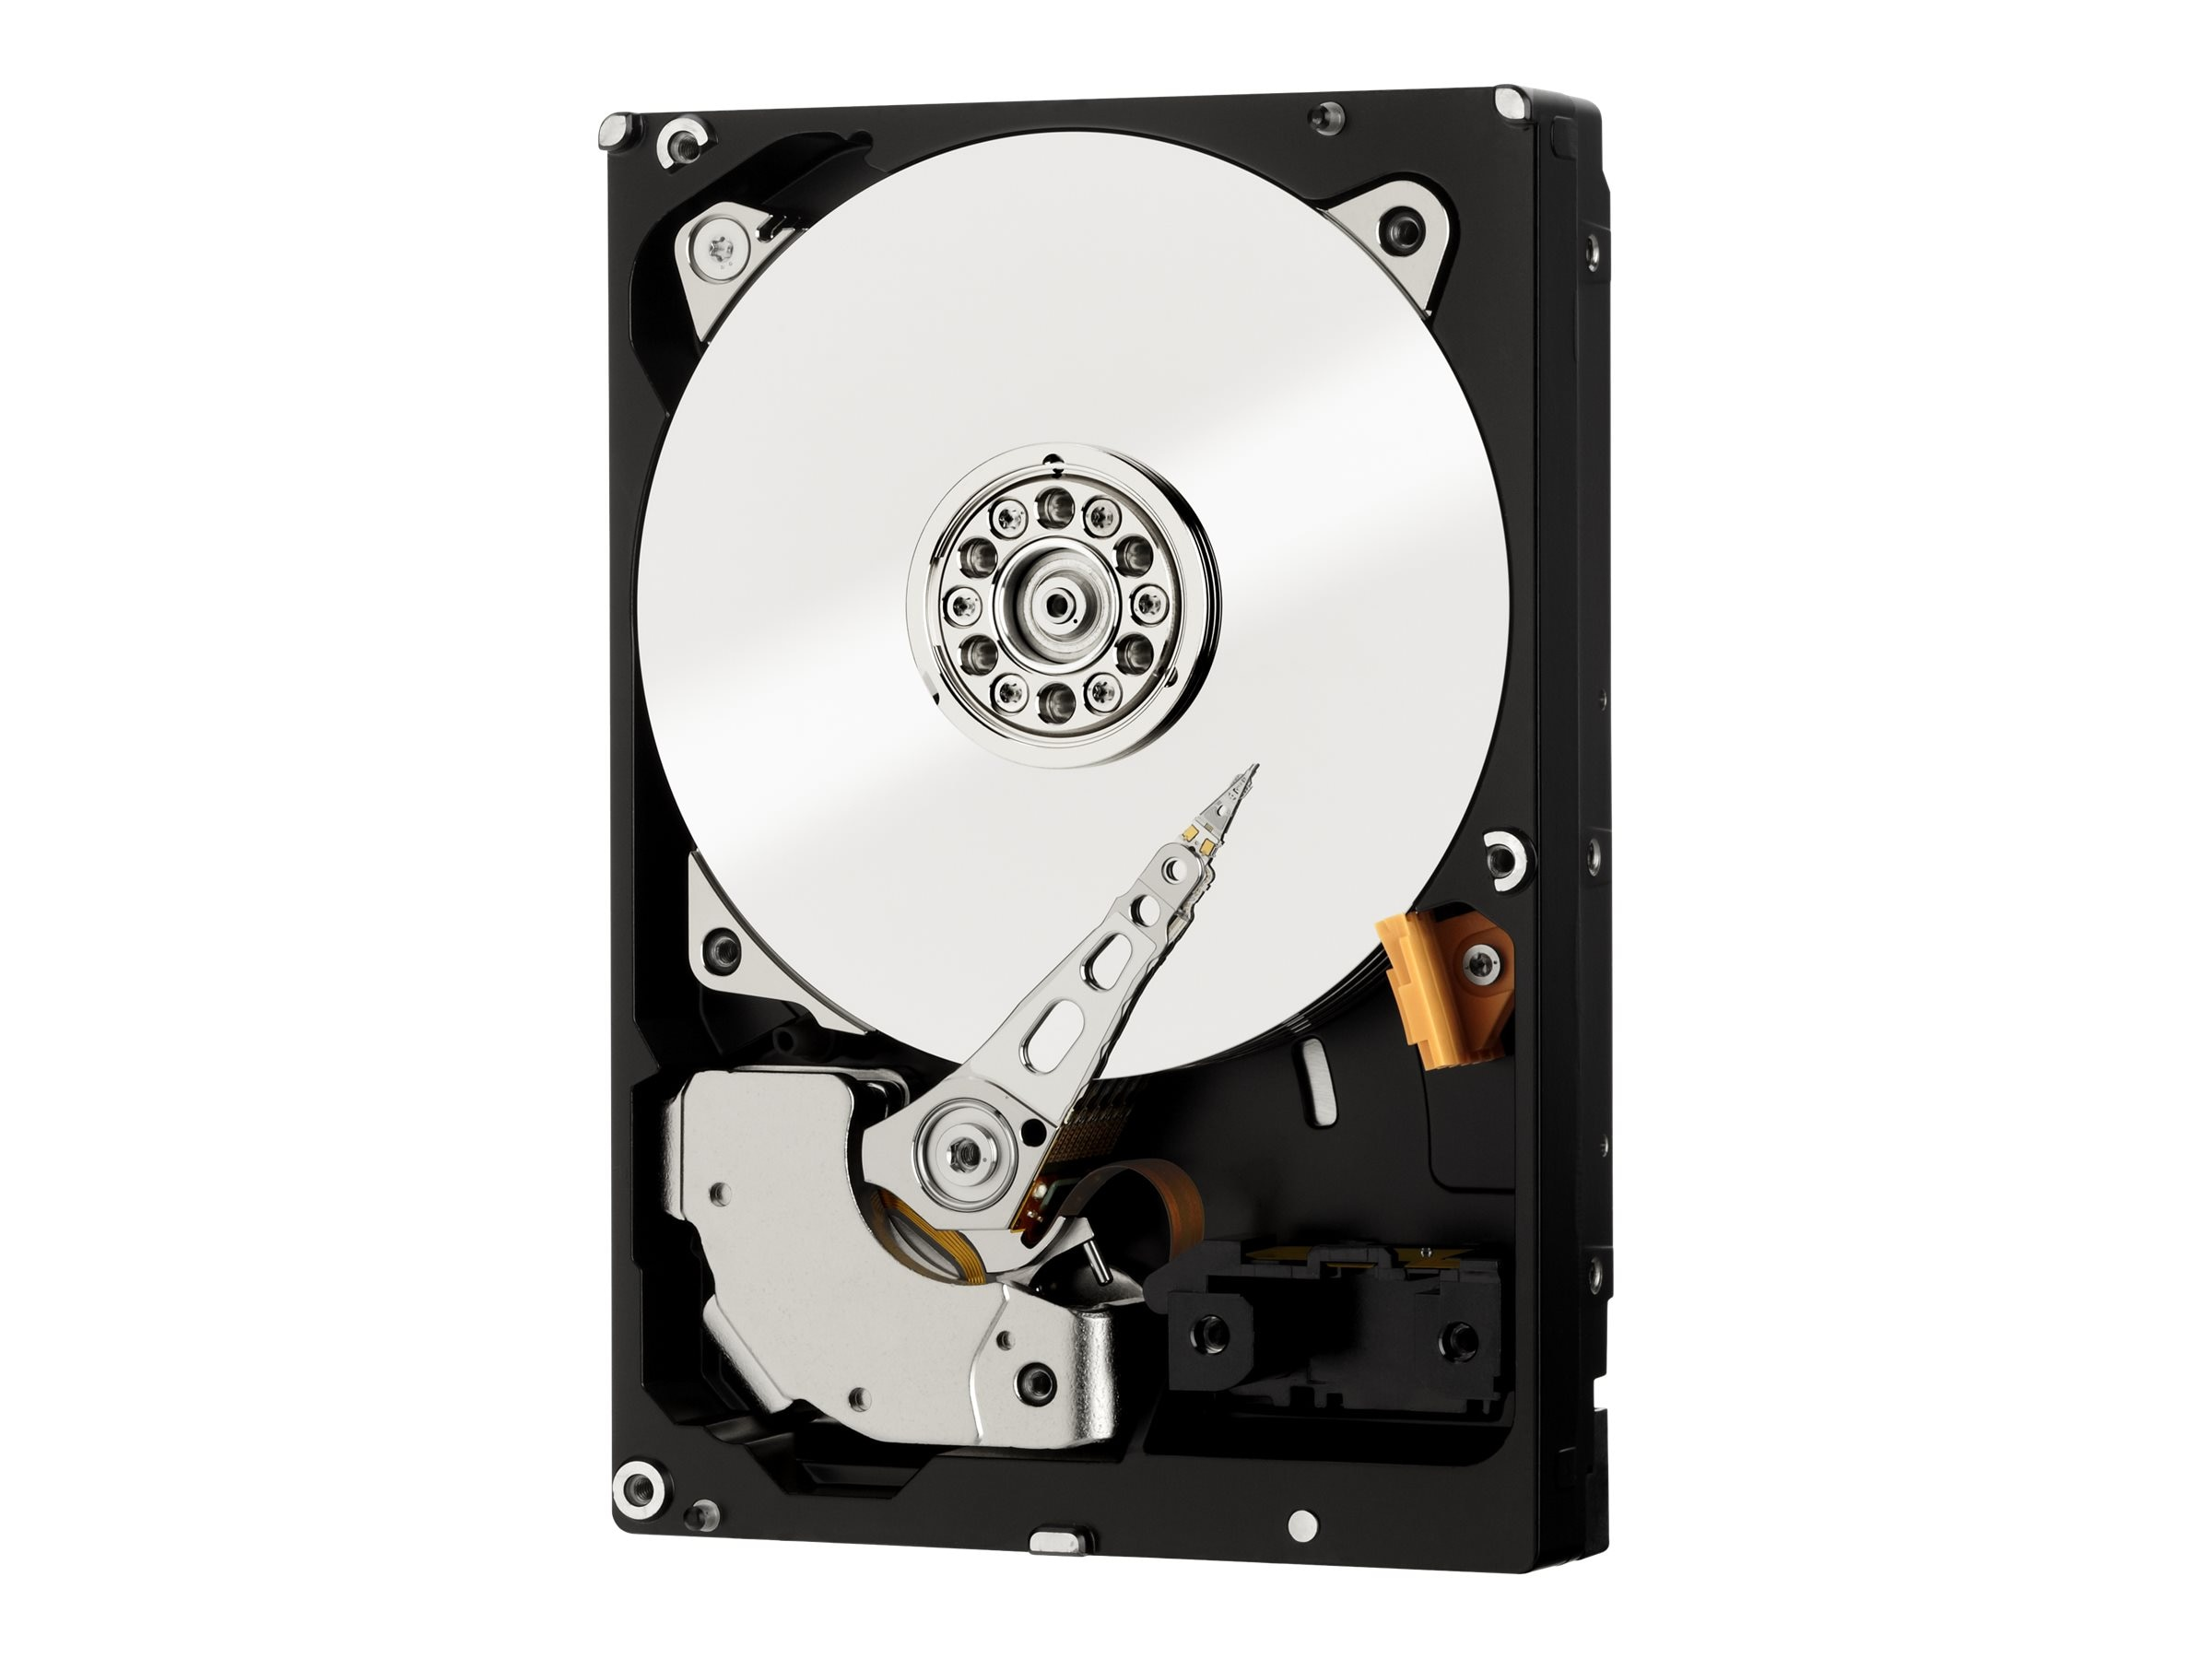 Open Box WD 1TB WD SE SATA 6Gb s Data Center Hard Drive - 128MB Cache, WD1002F9YZ, 31163961, Hard Drives - Internal